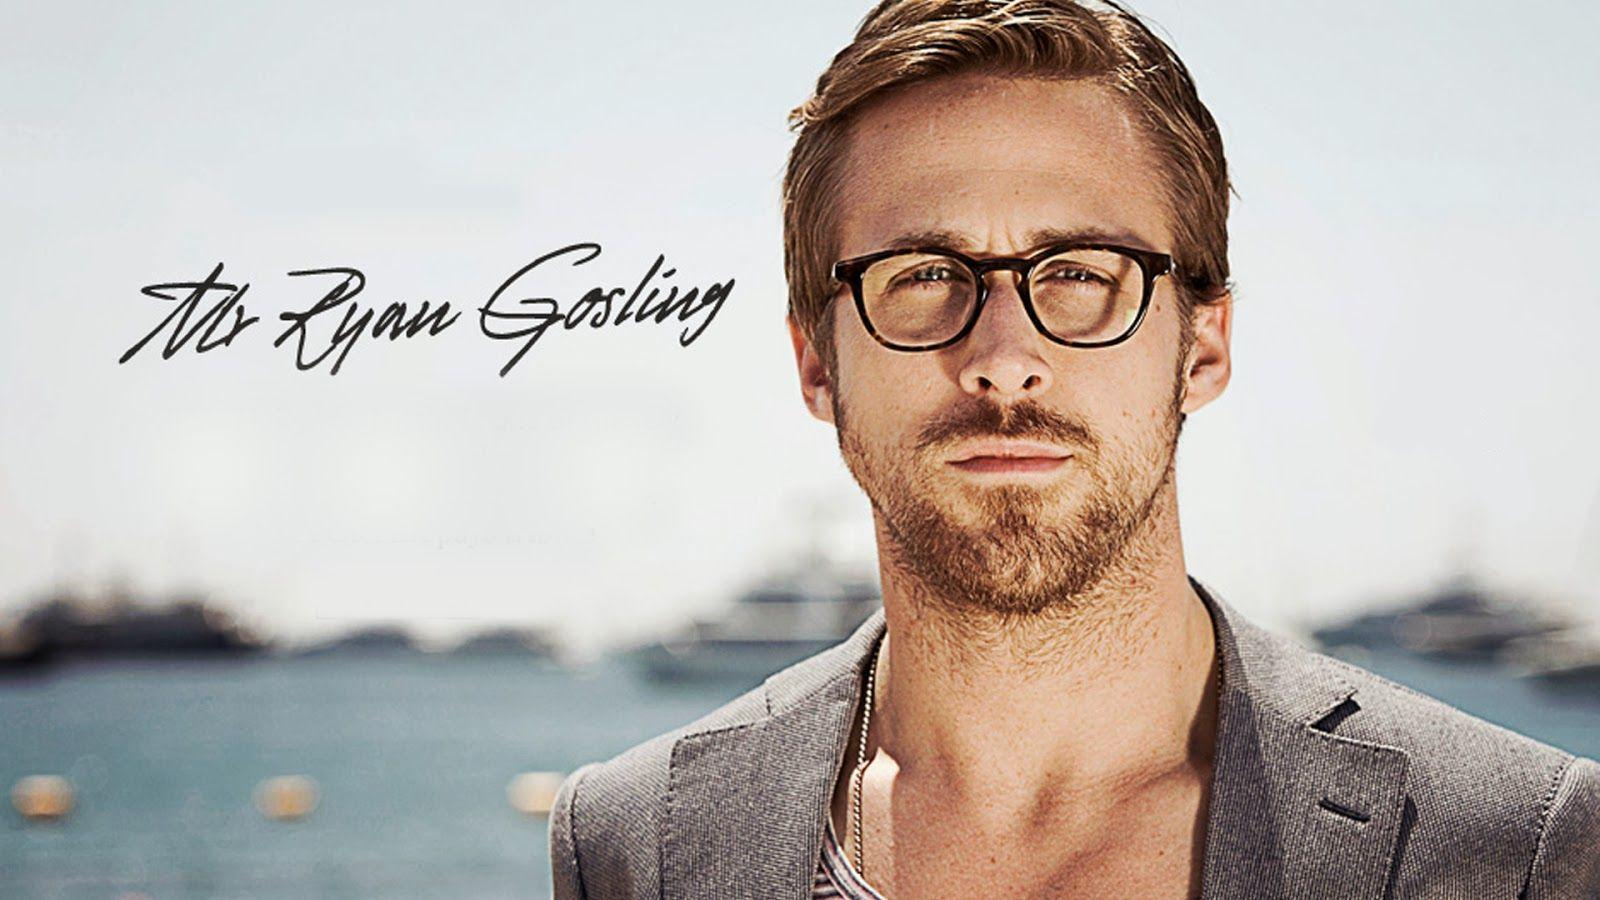 Ryan gosling wallpapers wallpaper cave for Men a porter